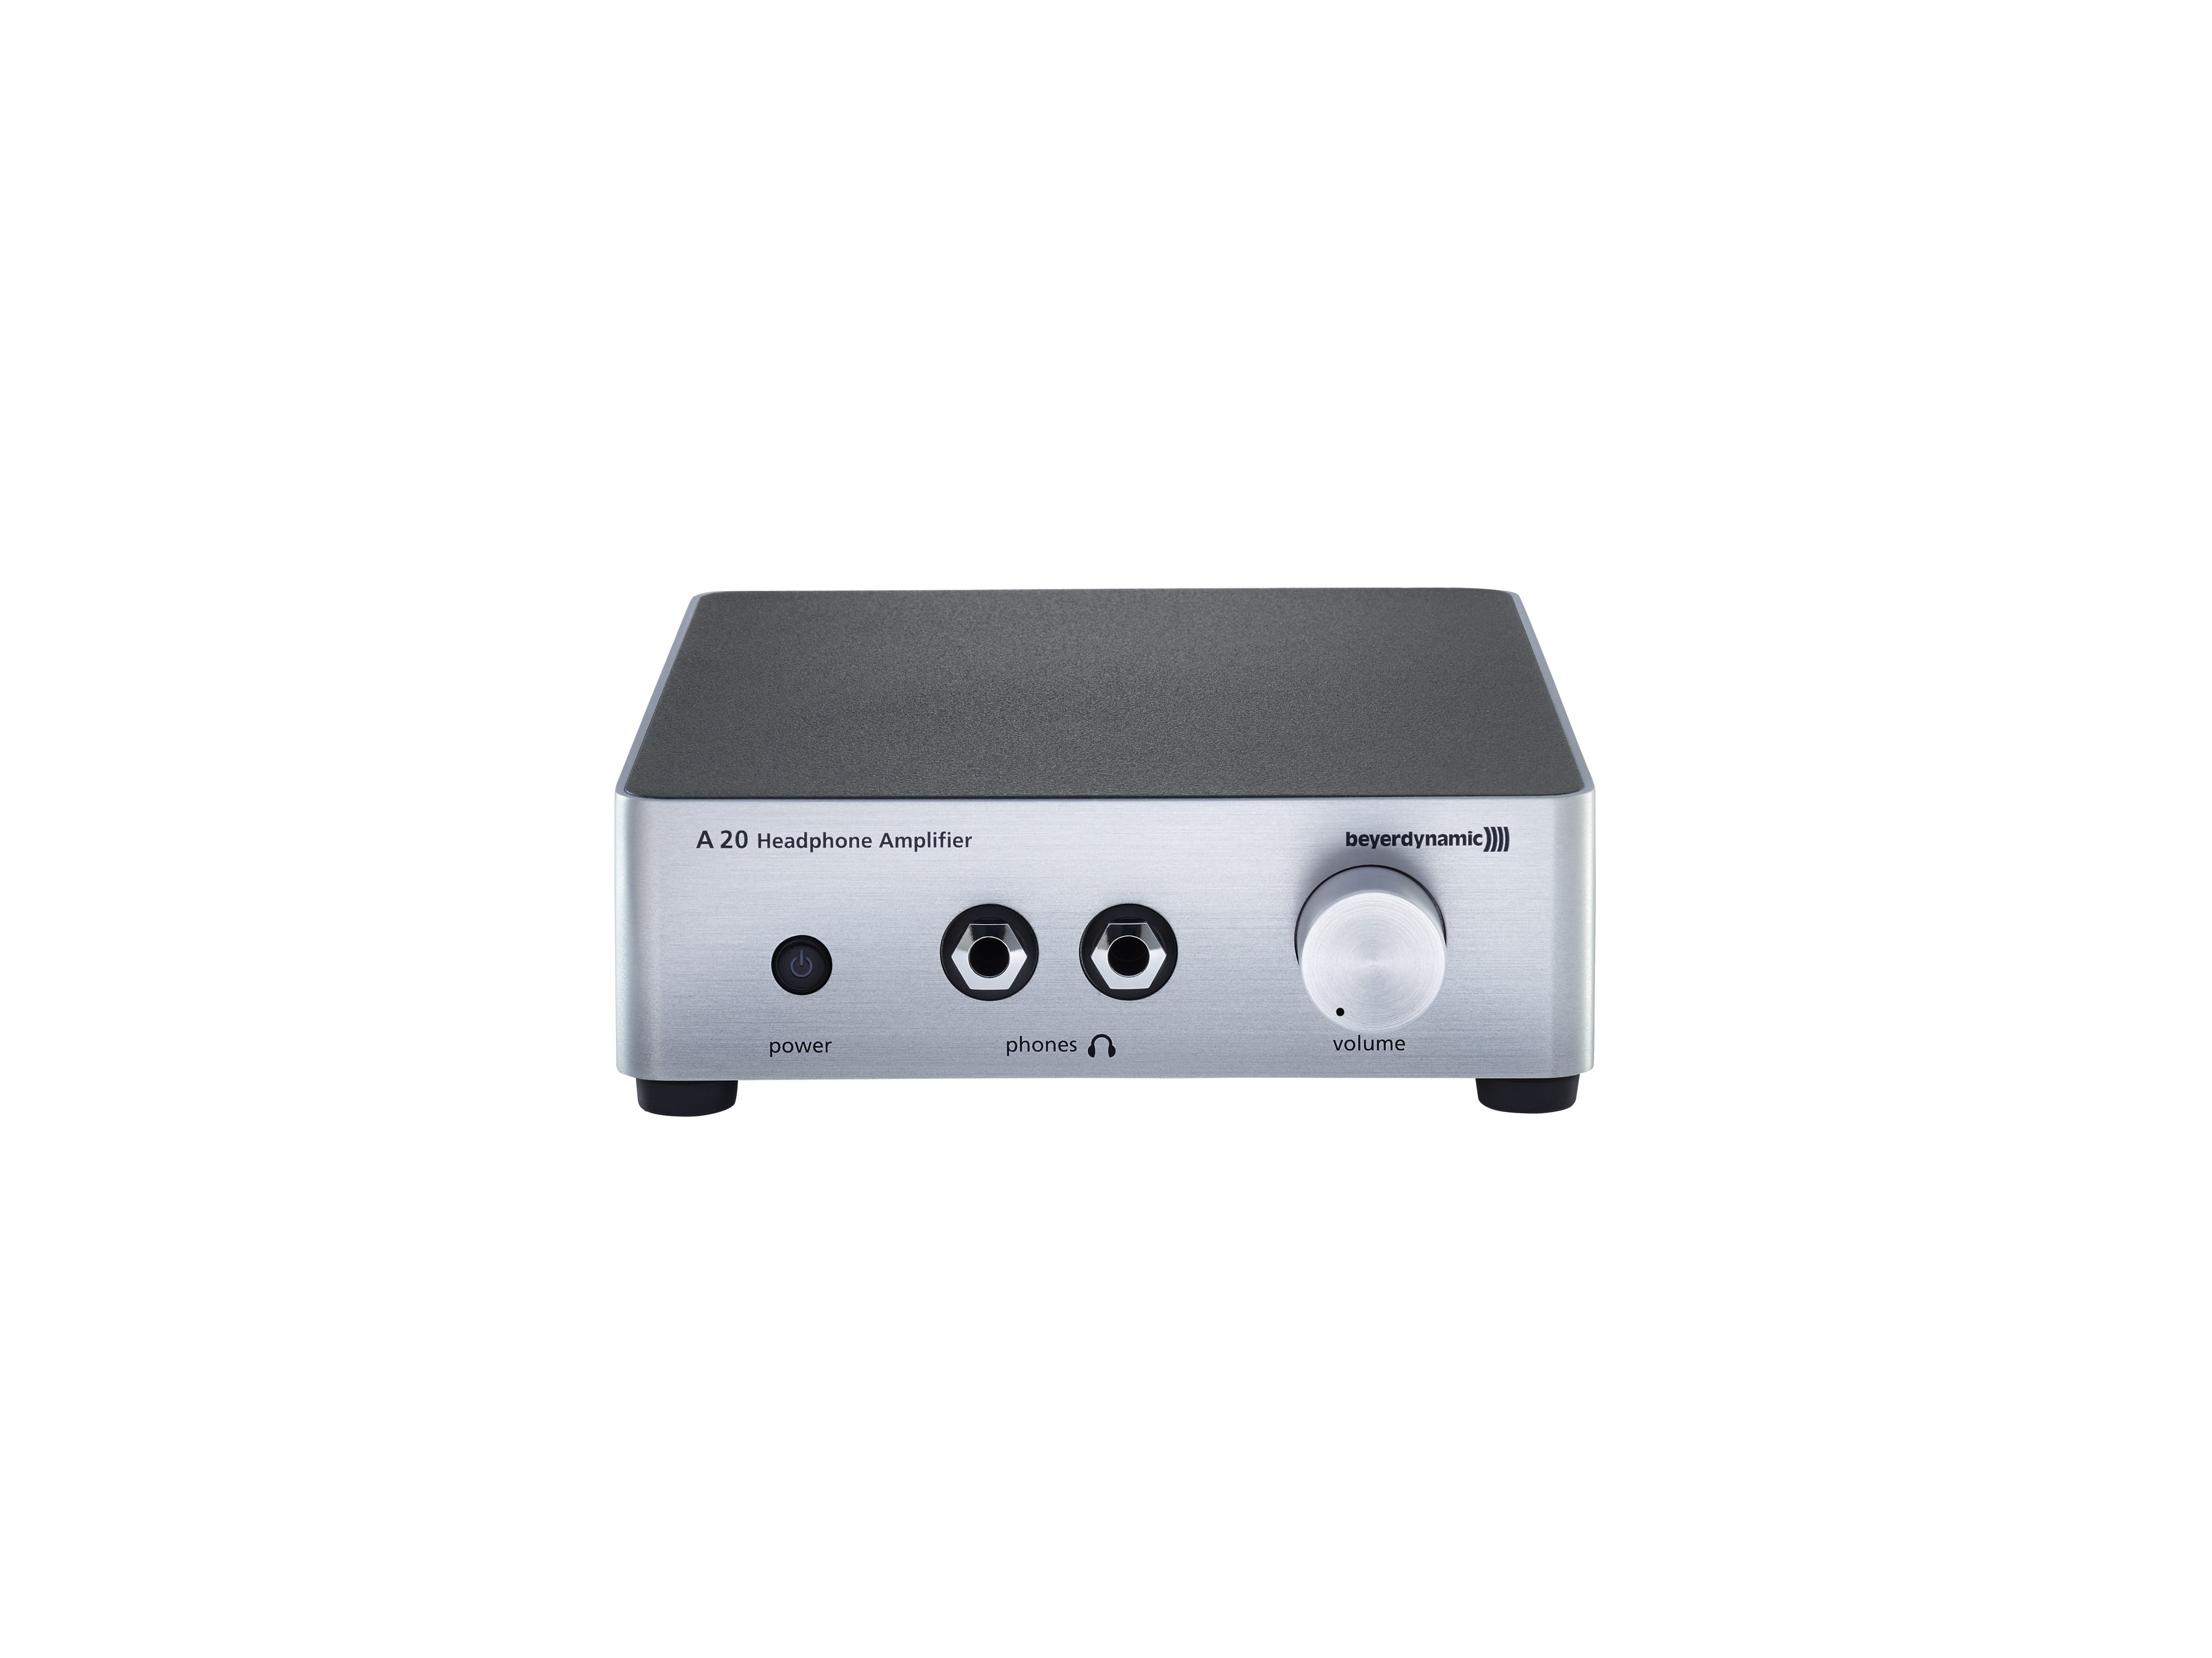 Beyerdynamic A 20 Headphone Amplifier For Demanding Music Lovers Circuit And Explanation Electronic Circuits Download Original 297 Kb